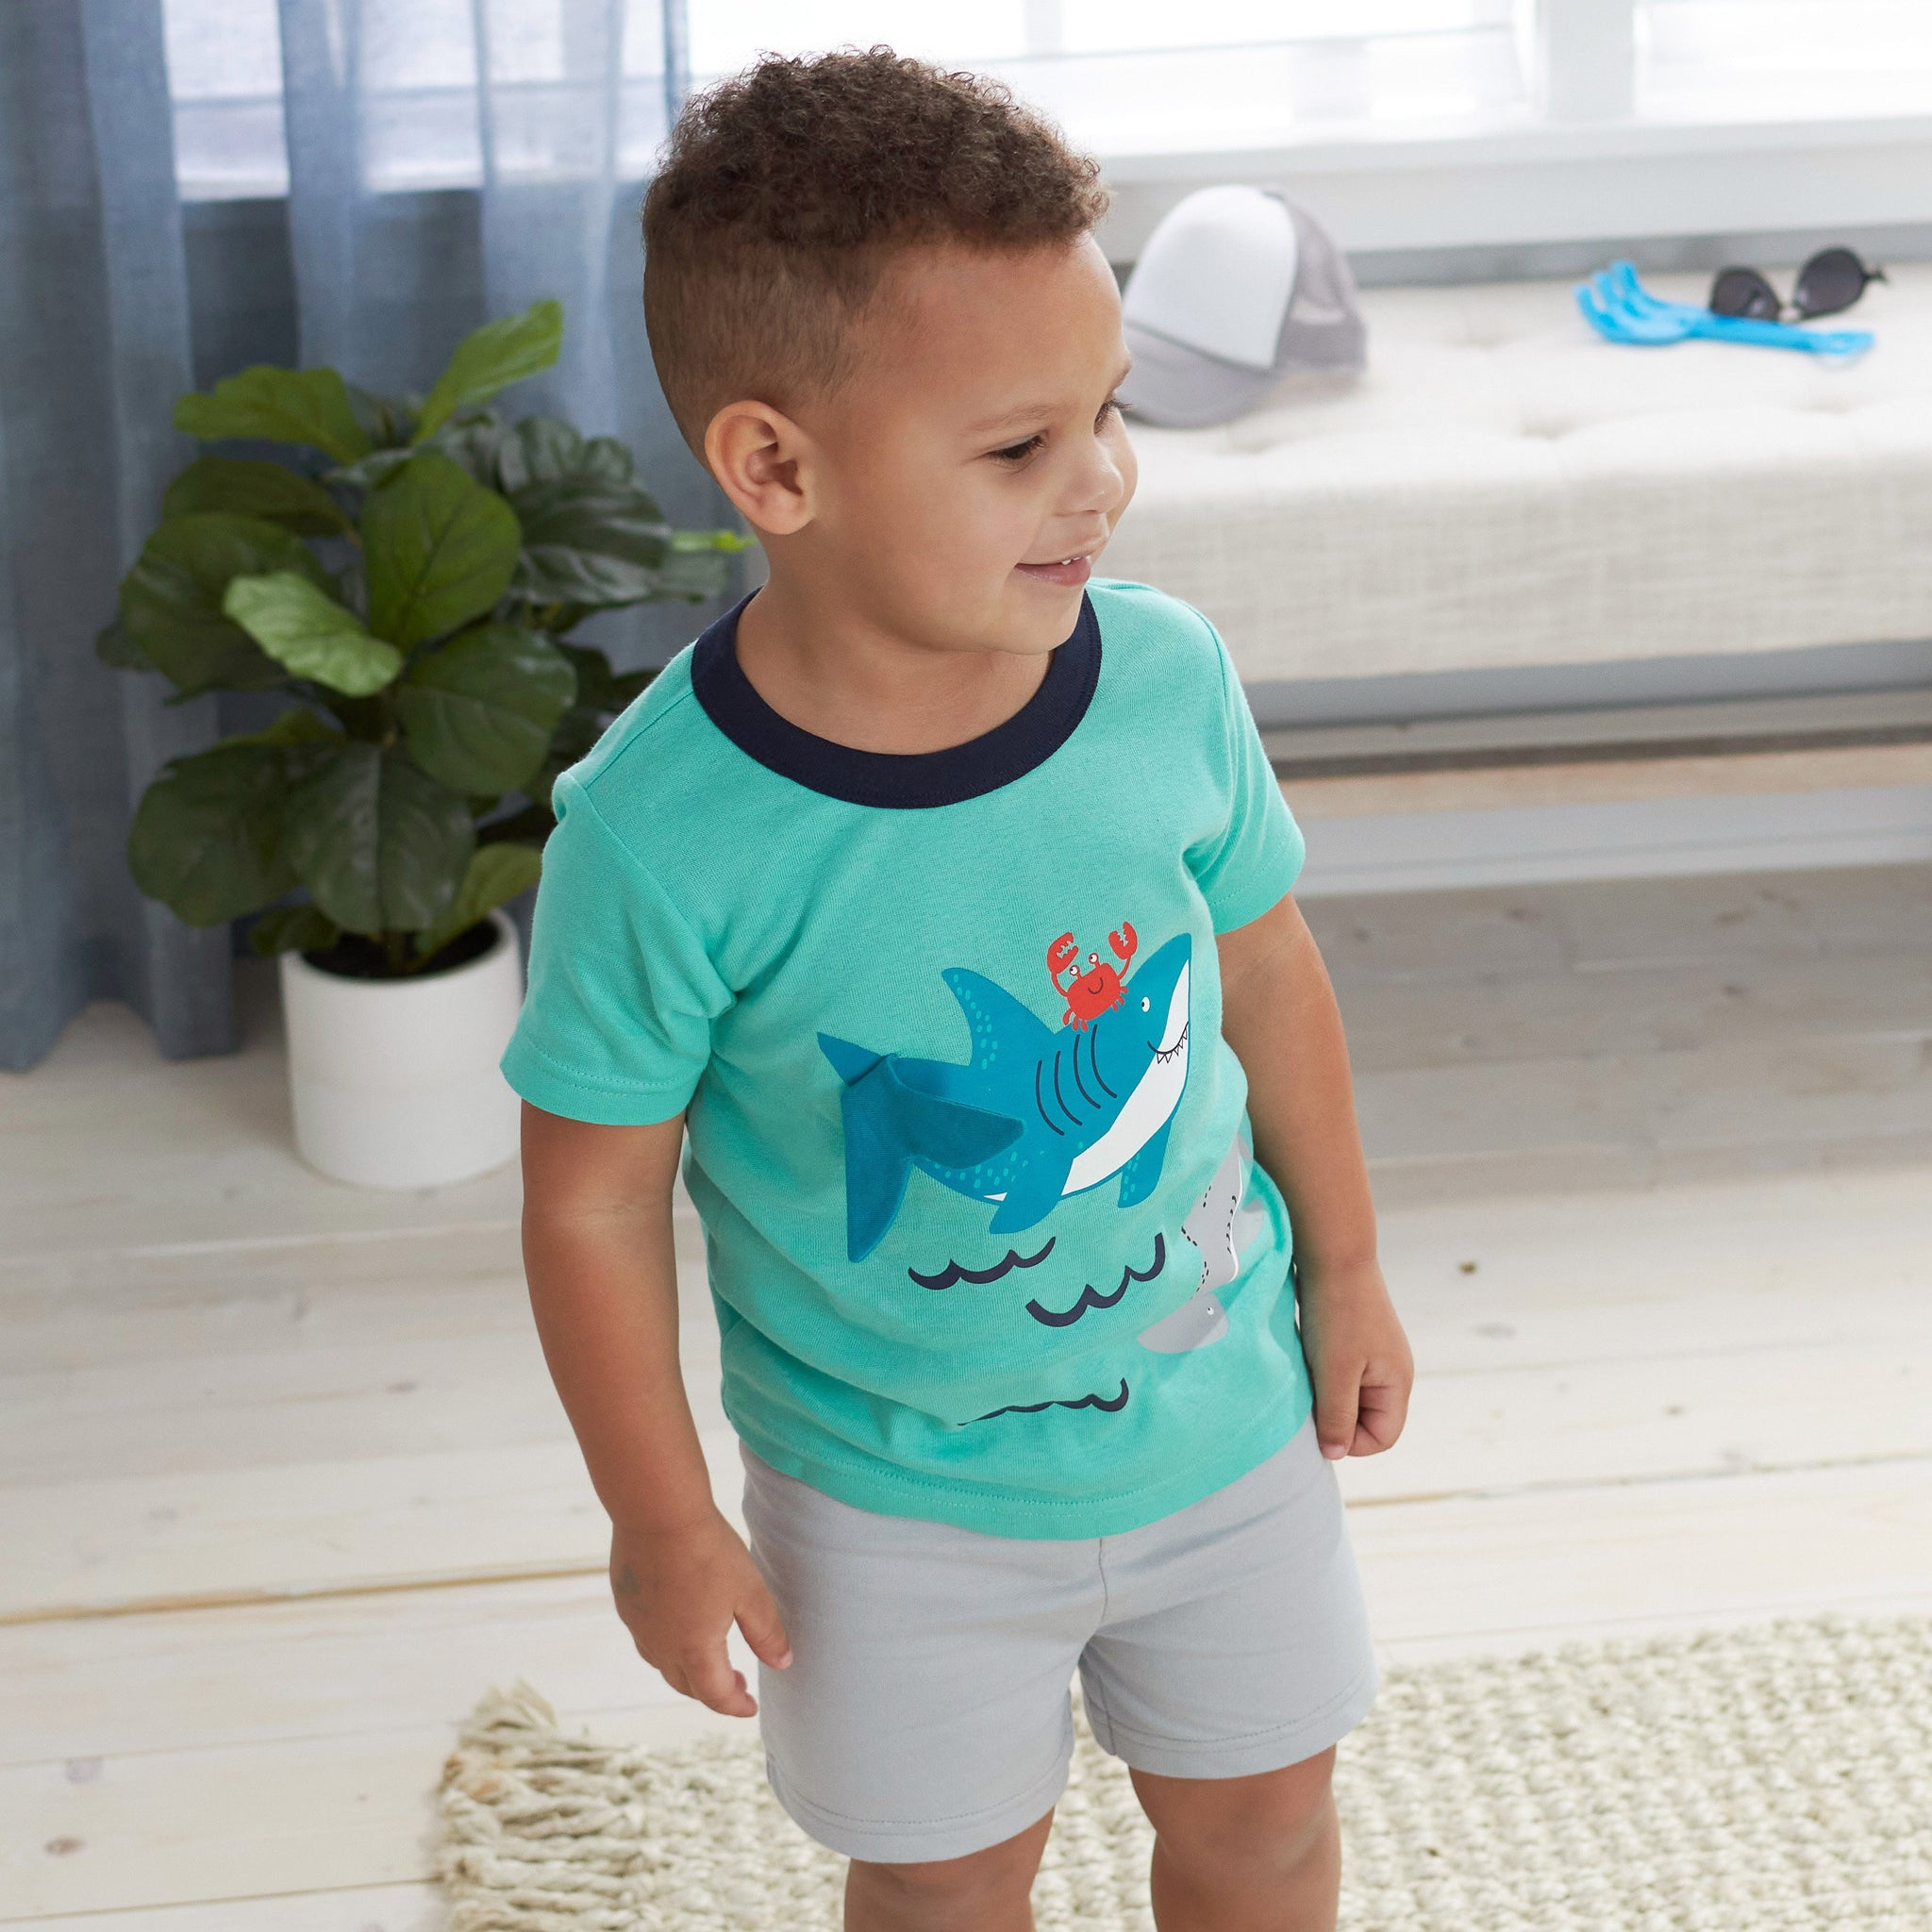 4-Piece Boys Shark Short, Shirts, and Active Pant Set